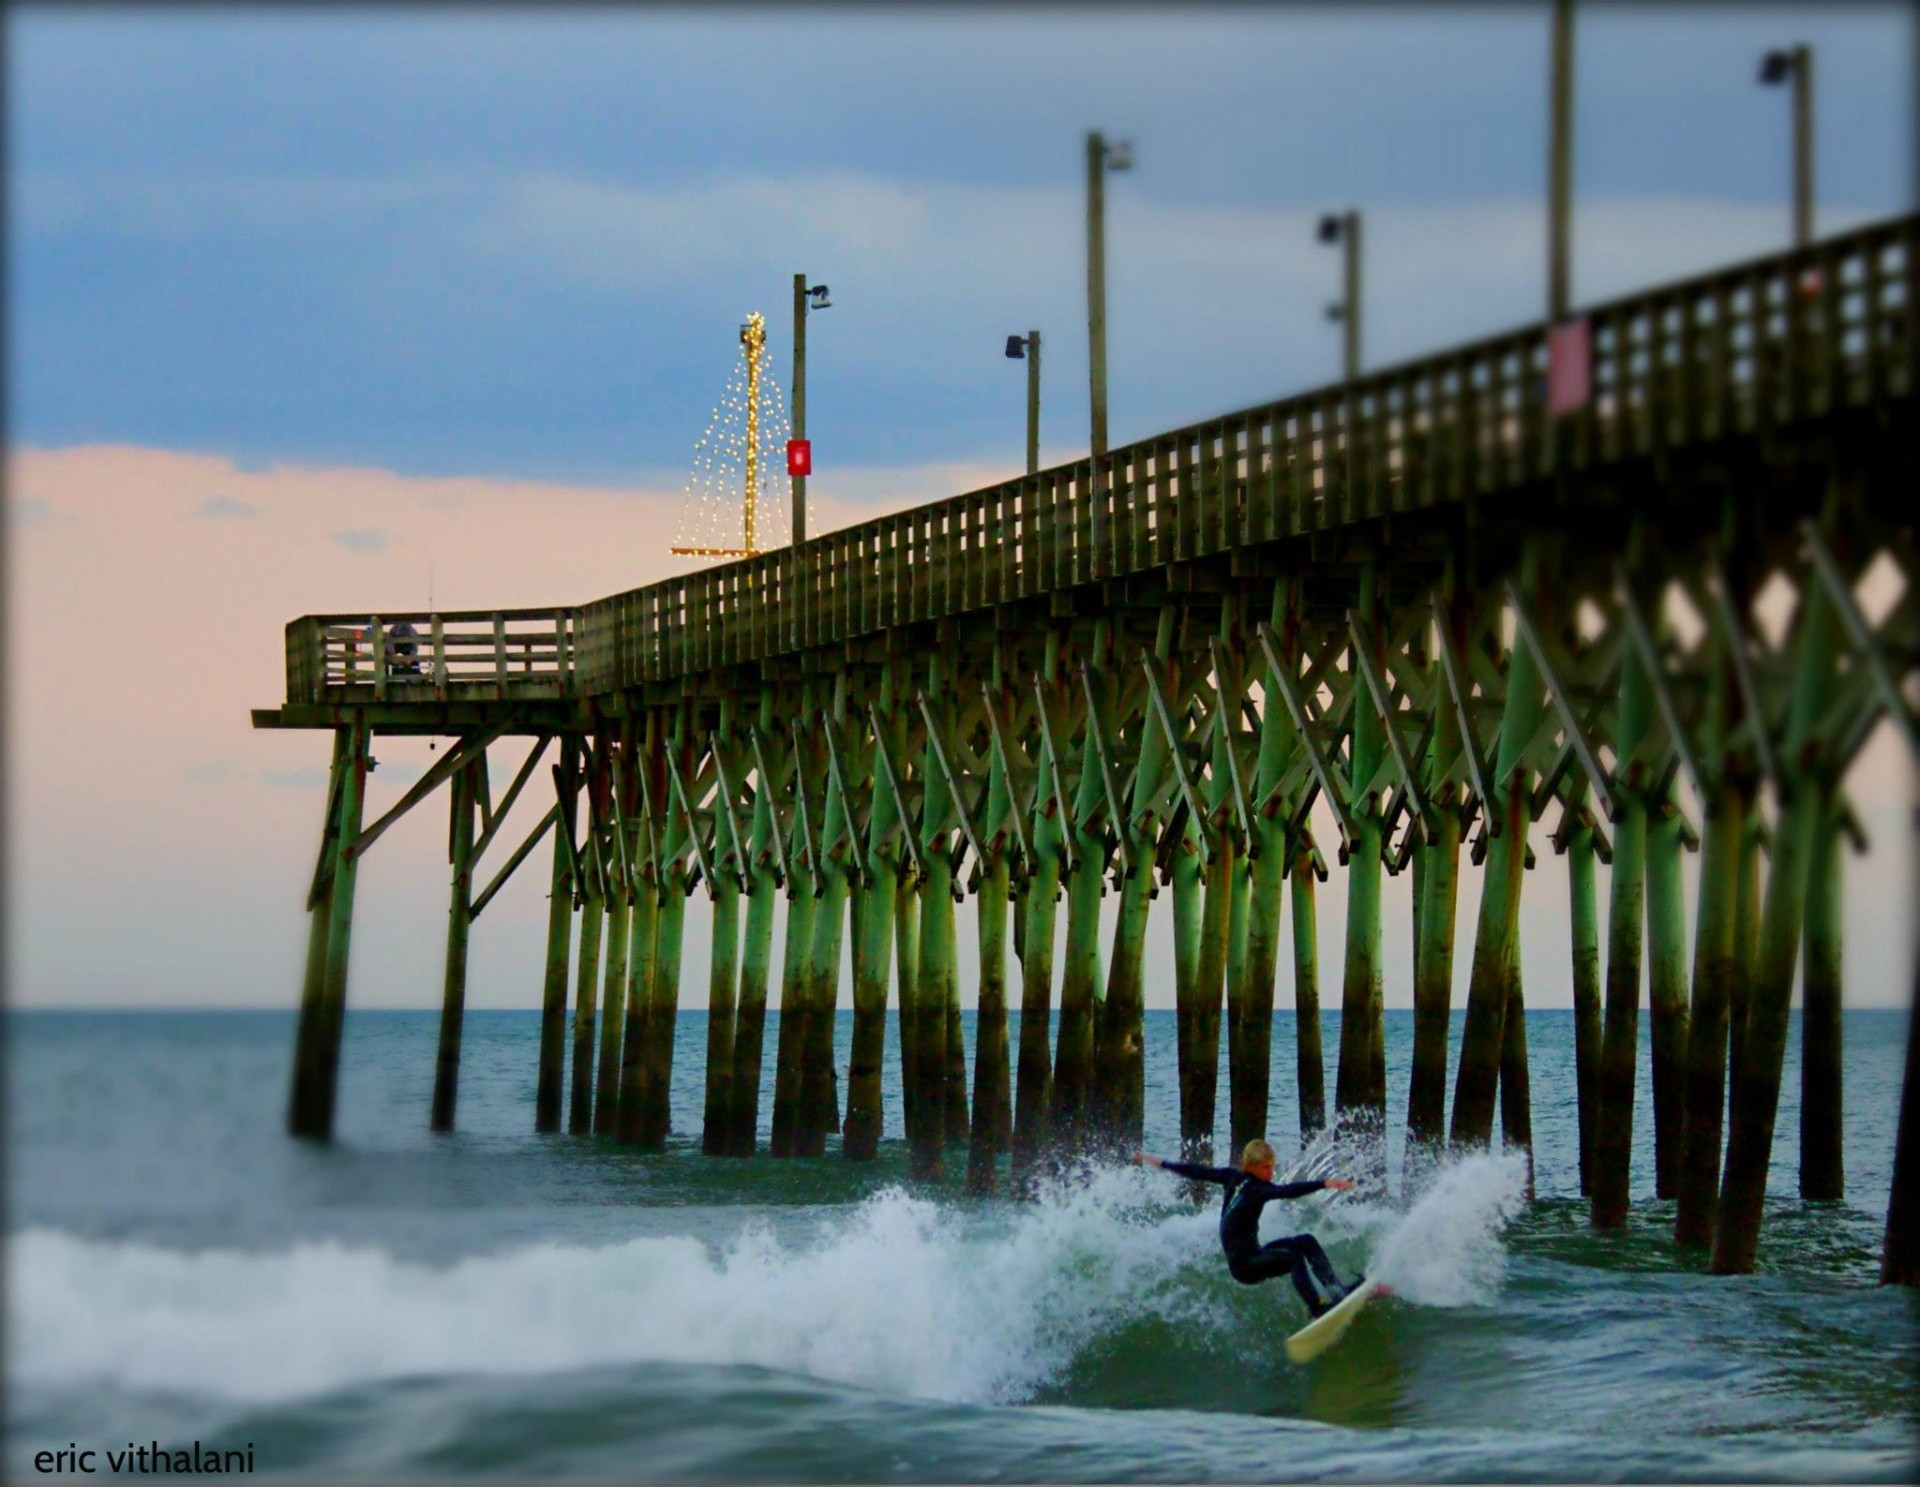 Kyle Parmeley's photo of Topsail Island